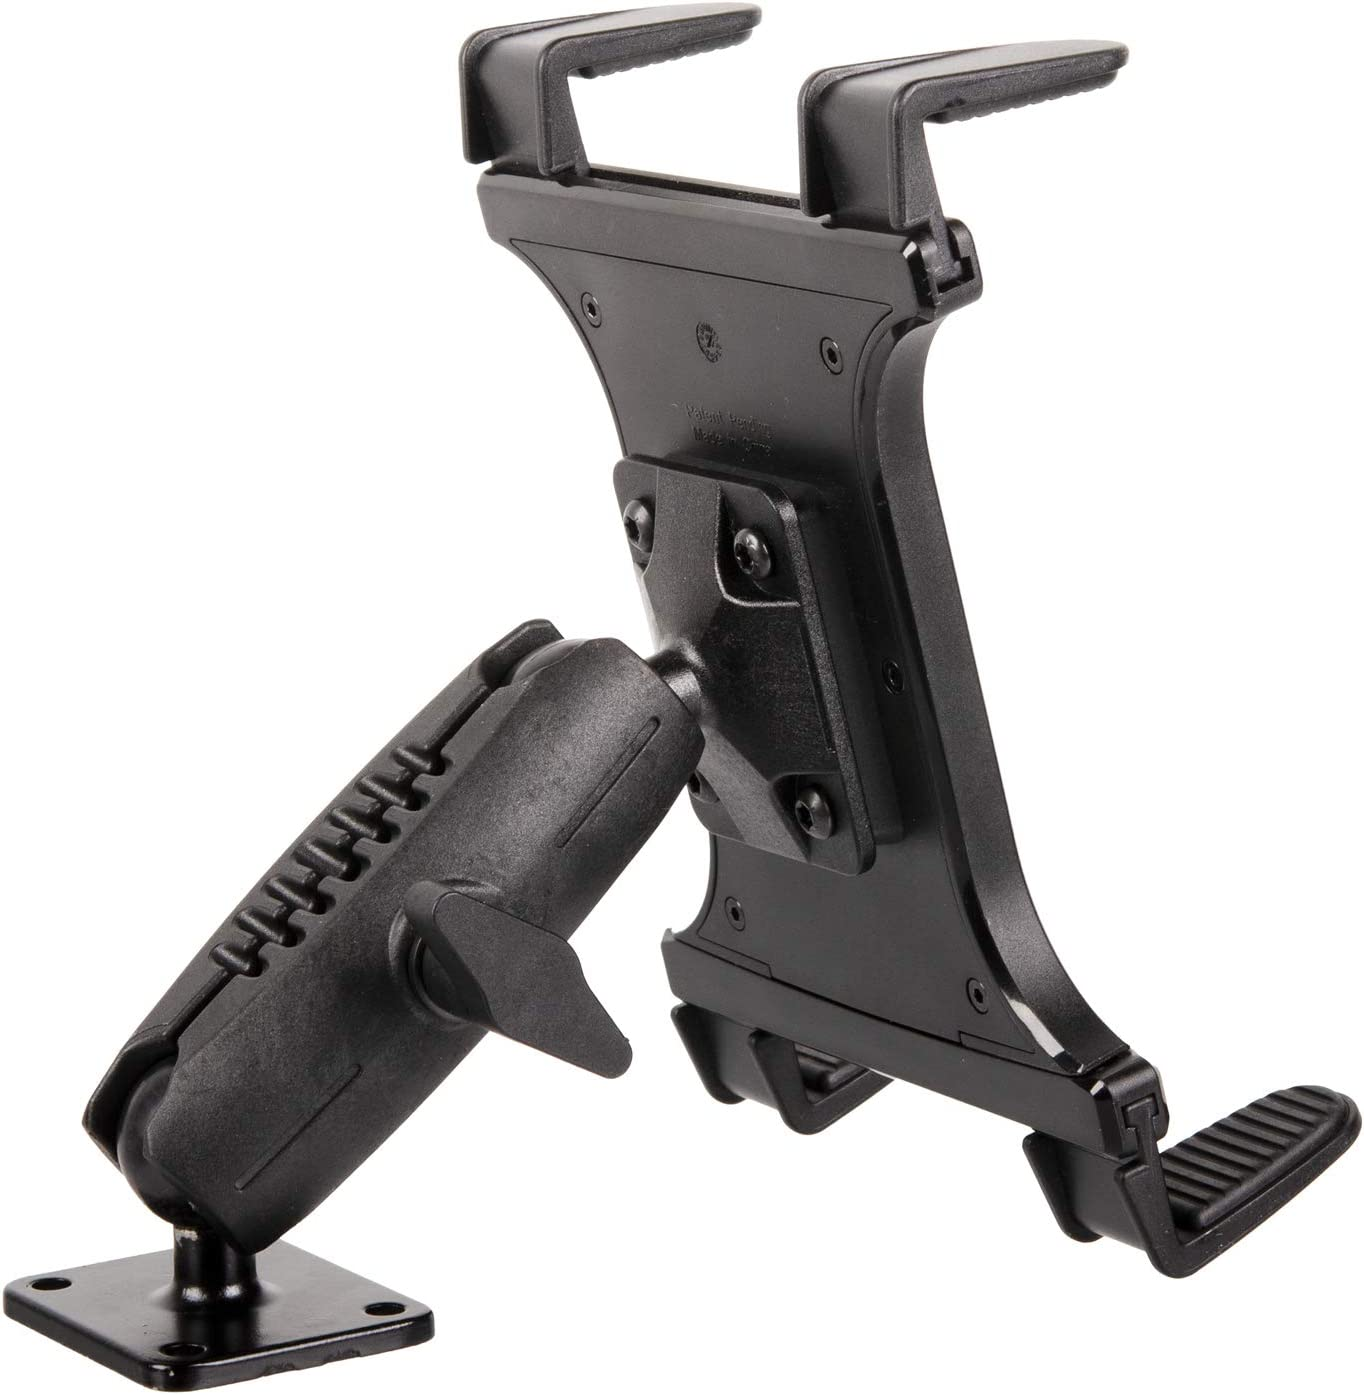 "Heavy Duty Drill Base Tablet Mount - TACKFORM [Enterprise Series] - 3.75"" iPad Holder for Wall or Truck. ELD Mount for Devices Including iPad Mini, IPad Pro 12.9, Galaxy S, Surface Pro & Switch"